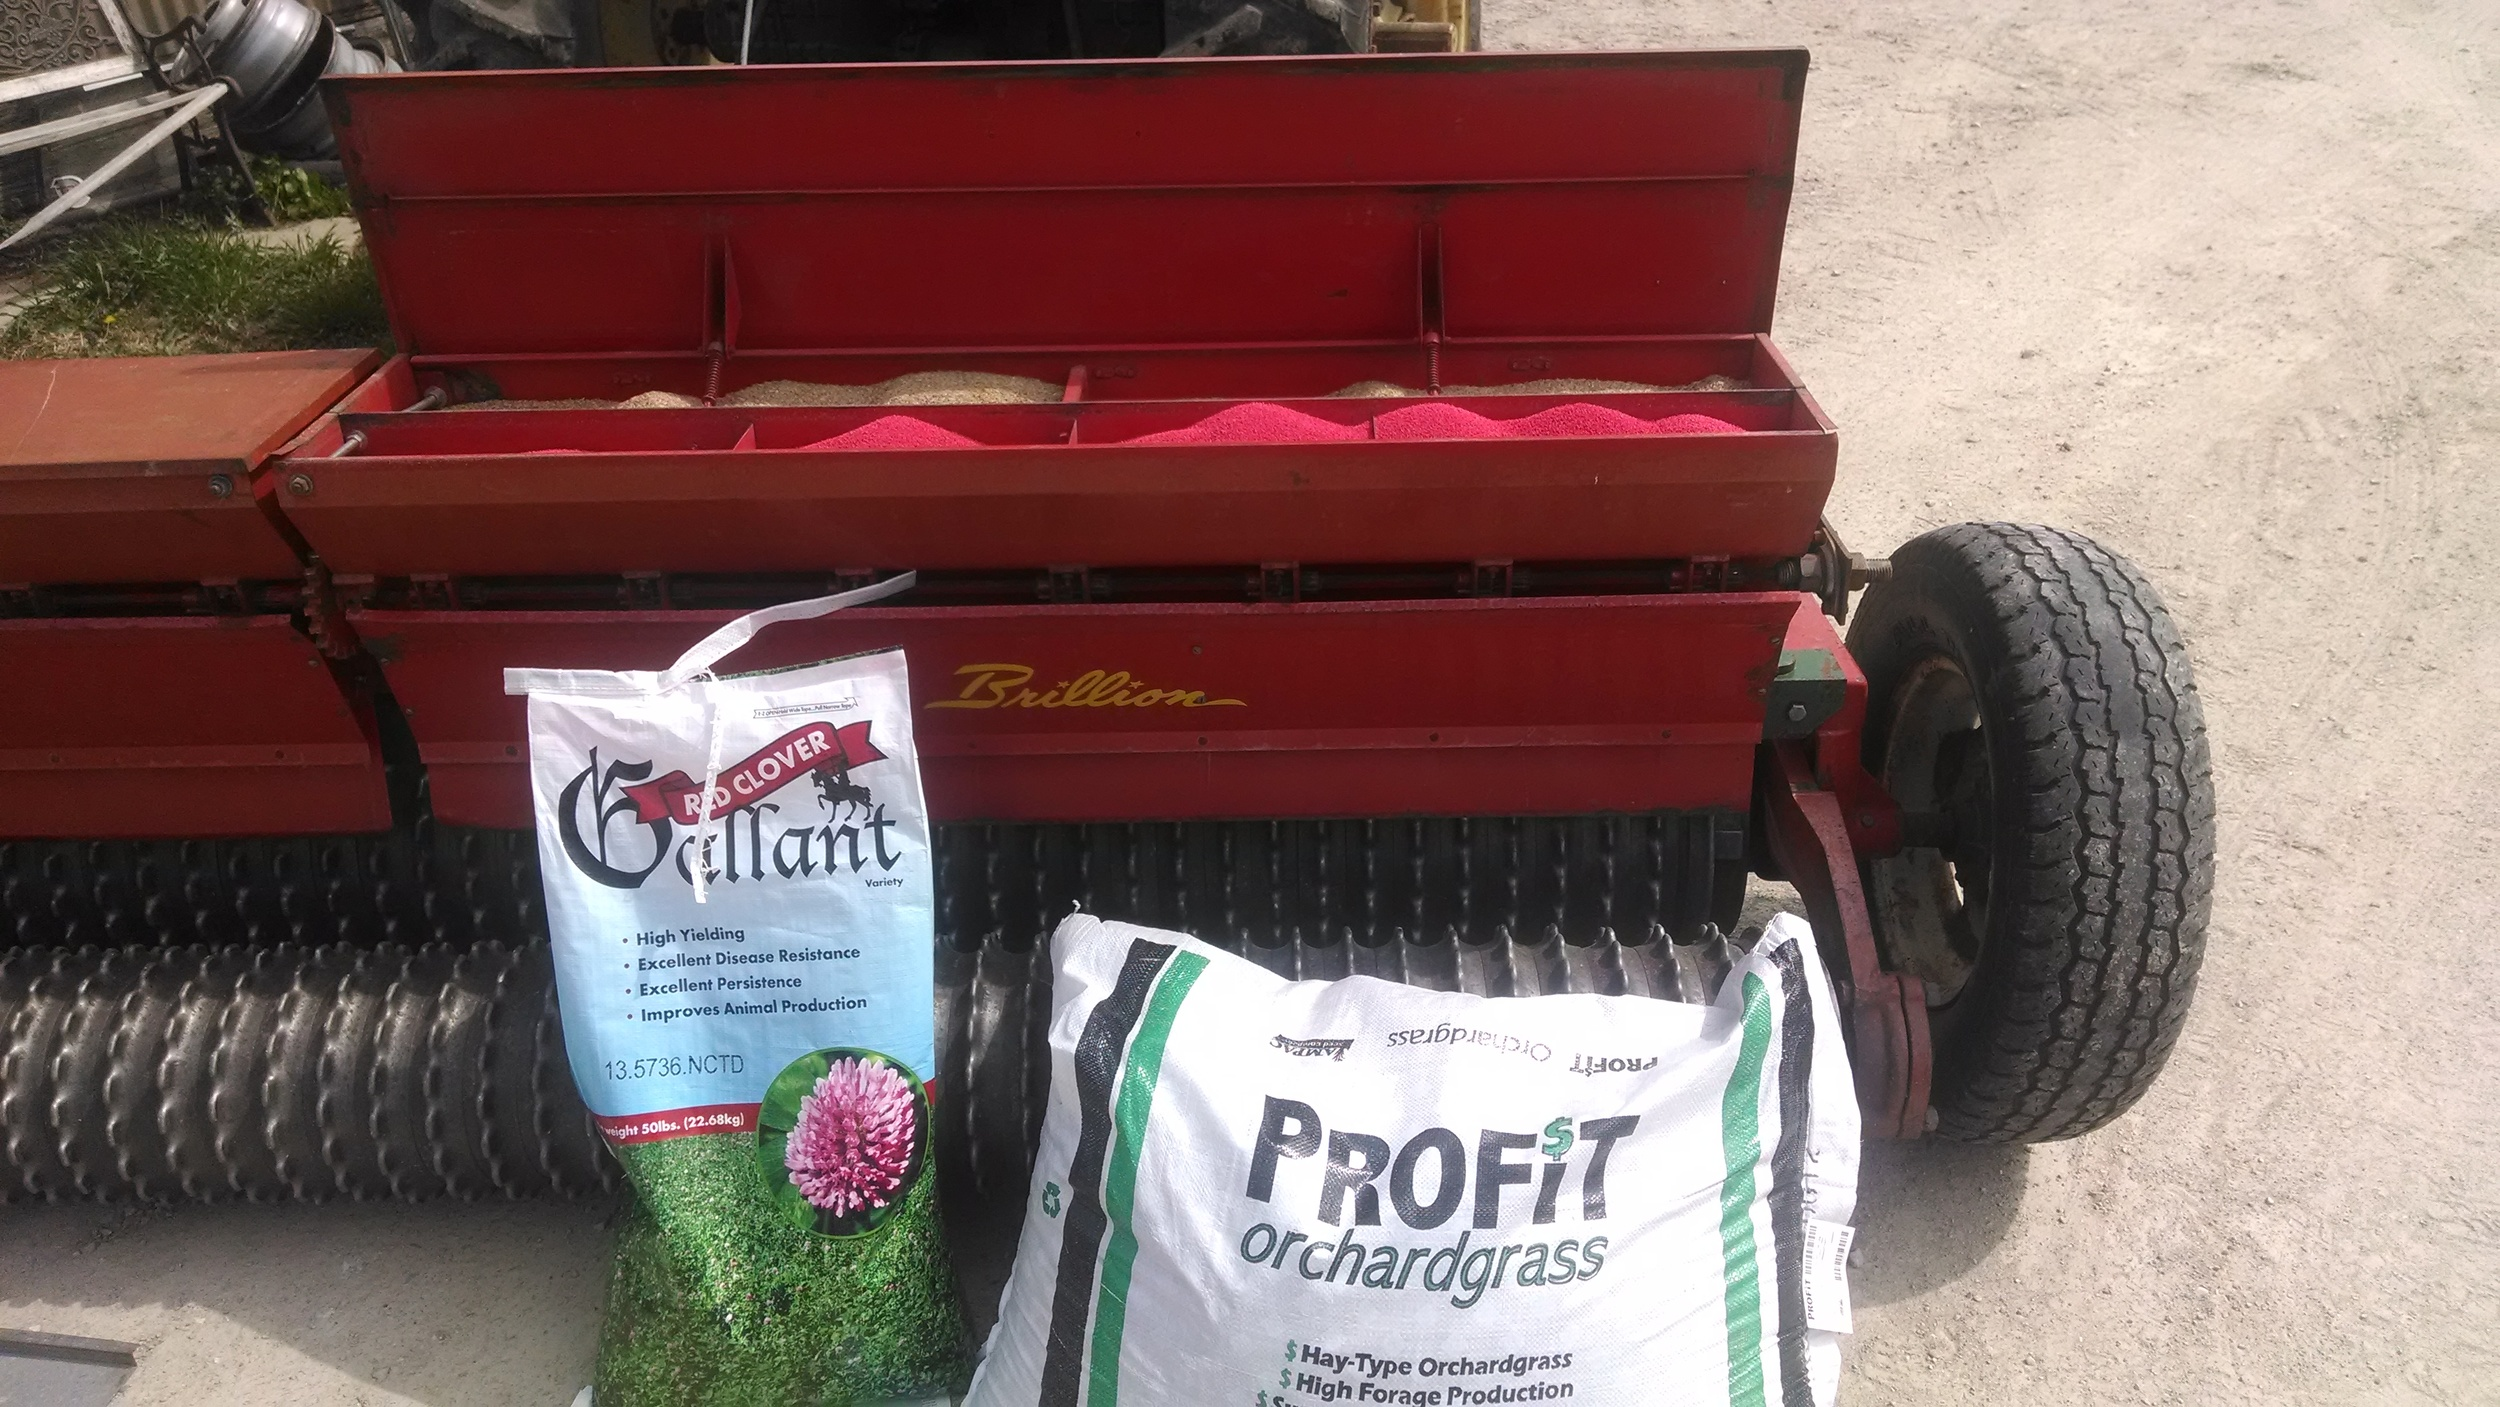 Gallant Red Clover and Profit Orchardgrass ready to be planted.